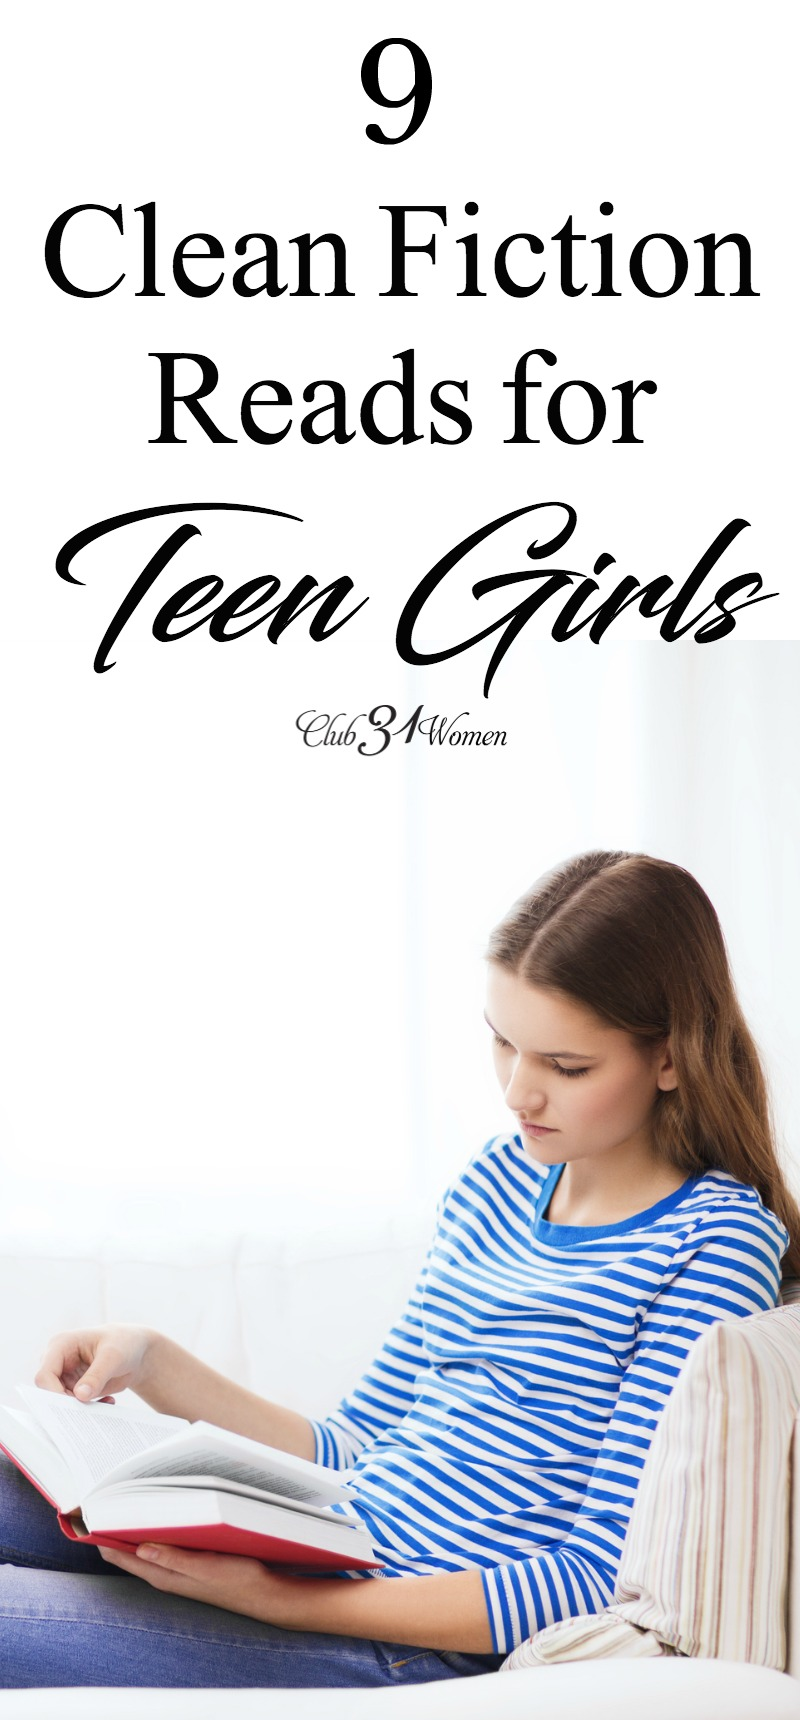 It can be difficult to find good, clean fiction reads for teen girls today. We hope this list will get you started in the right direction.